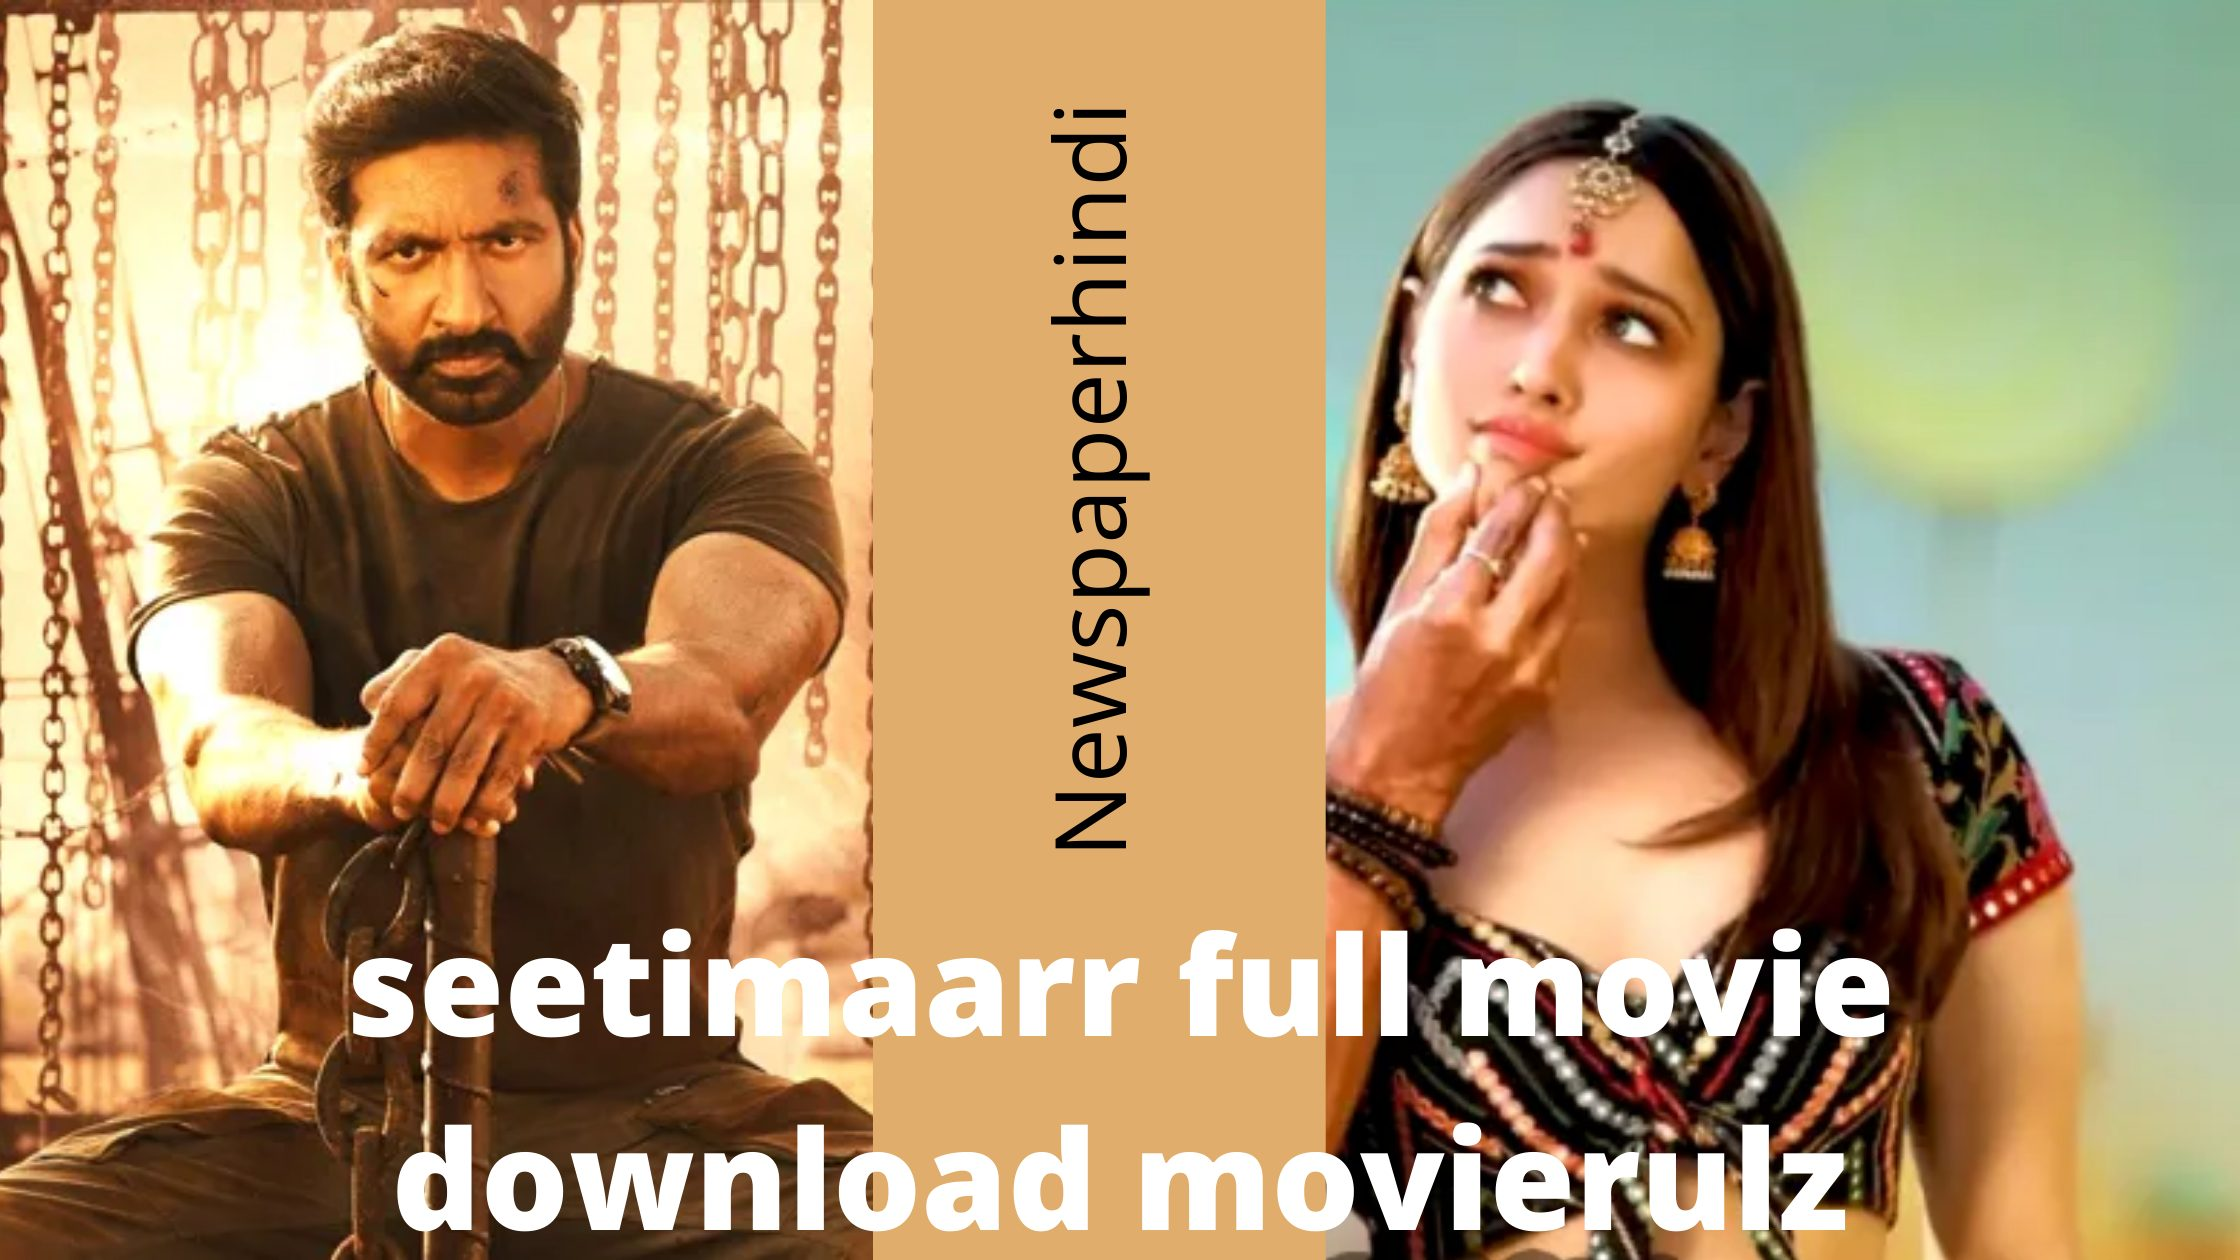 seetimaarr full movie download movierulz